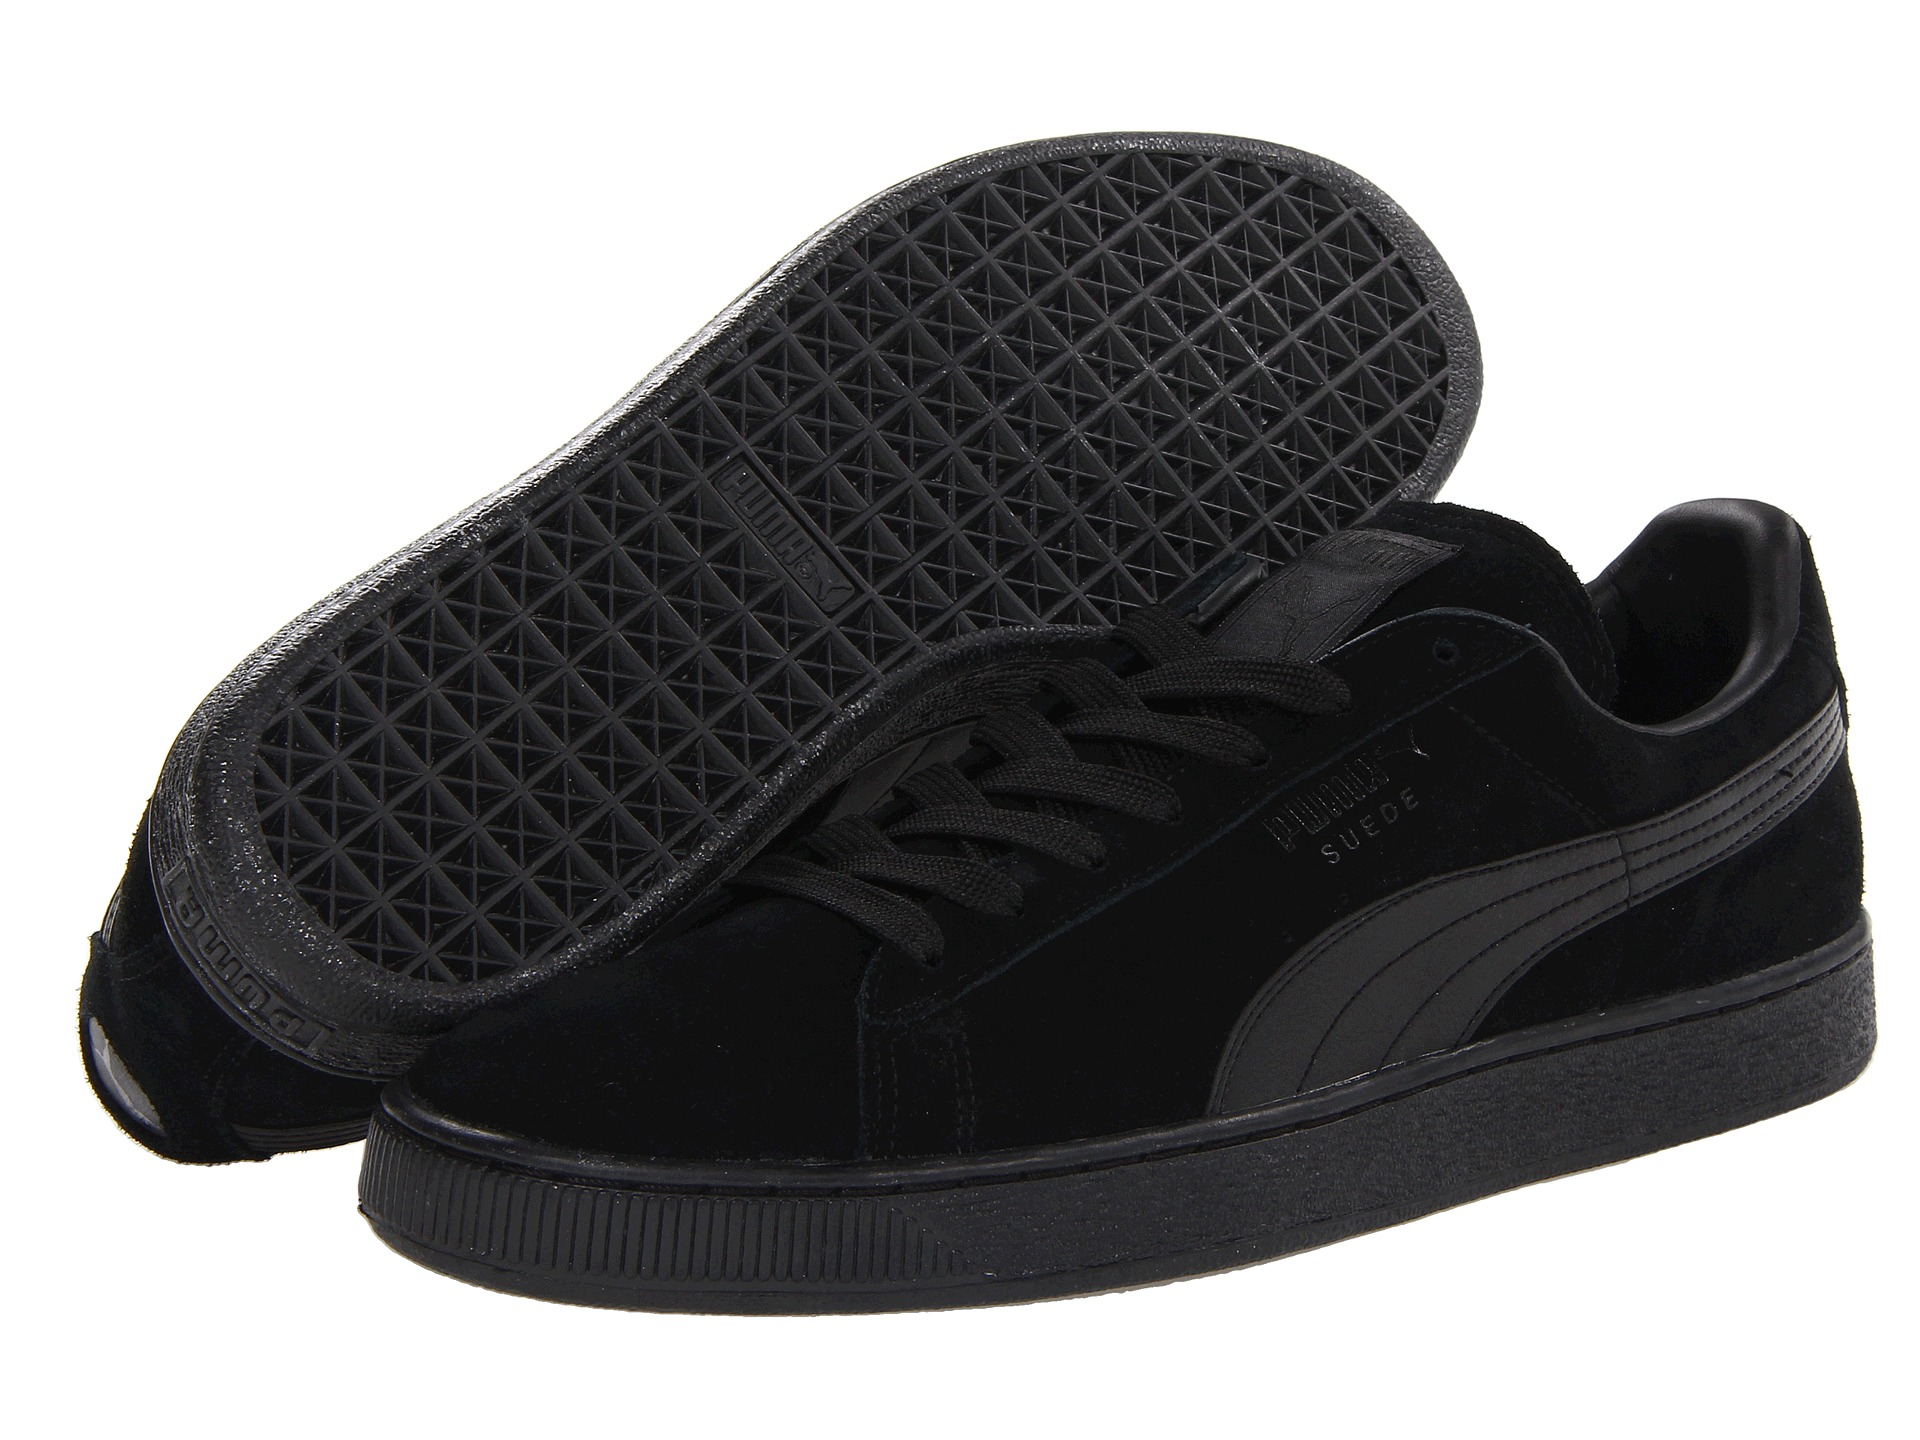 674dbb556d07 puma suede all black on sale   OFF45% Discounts